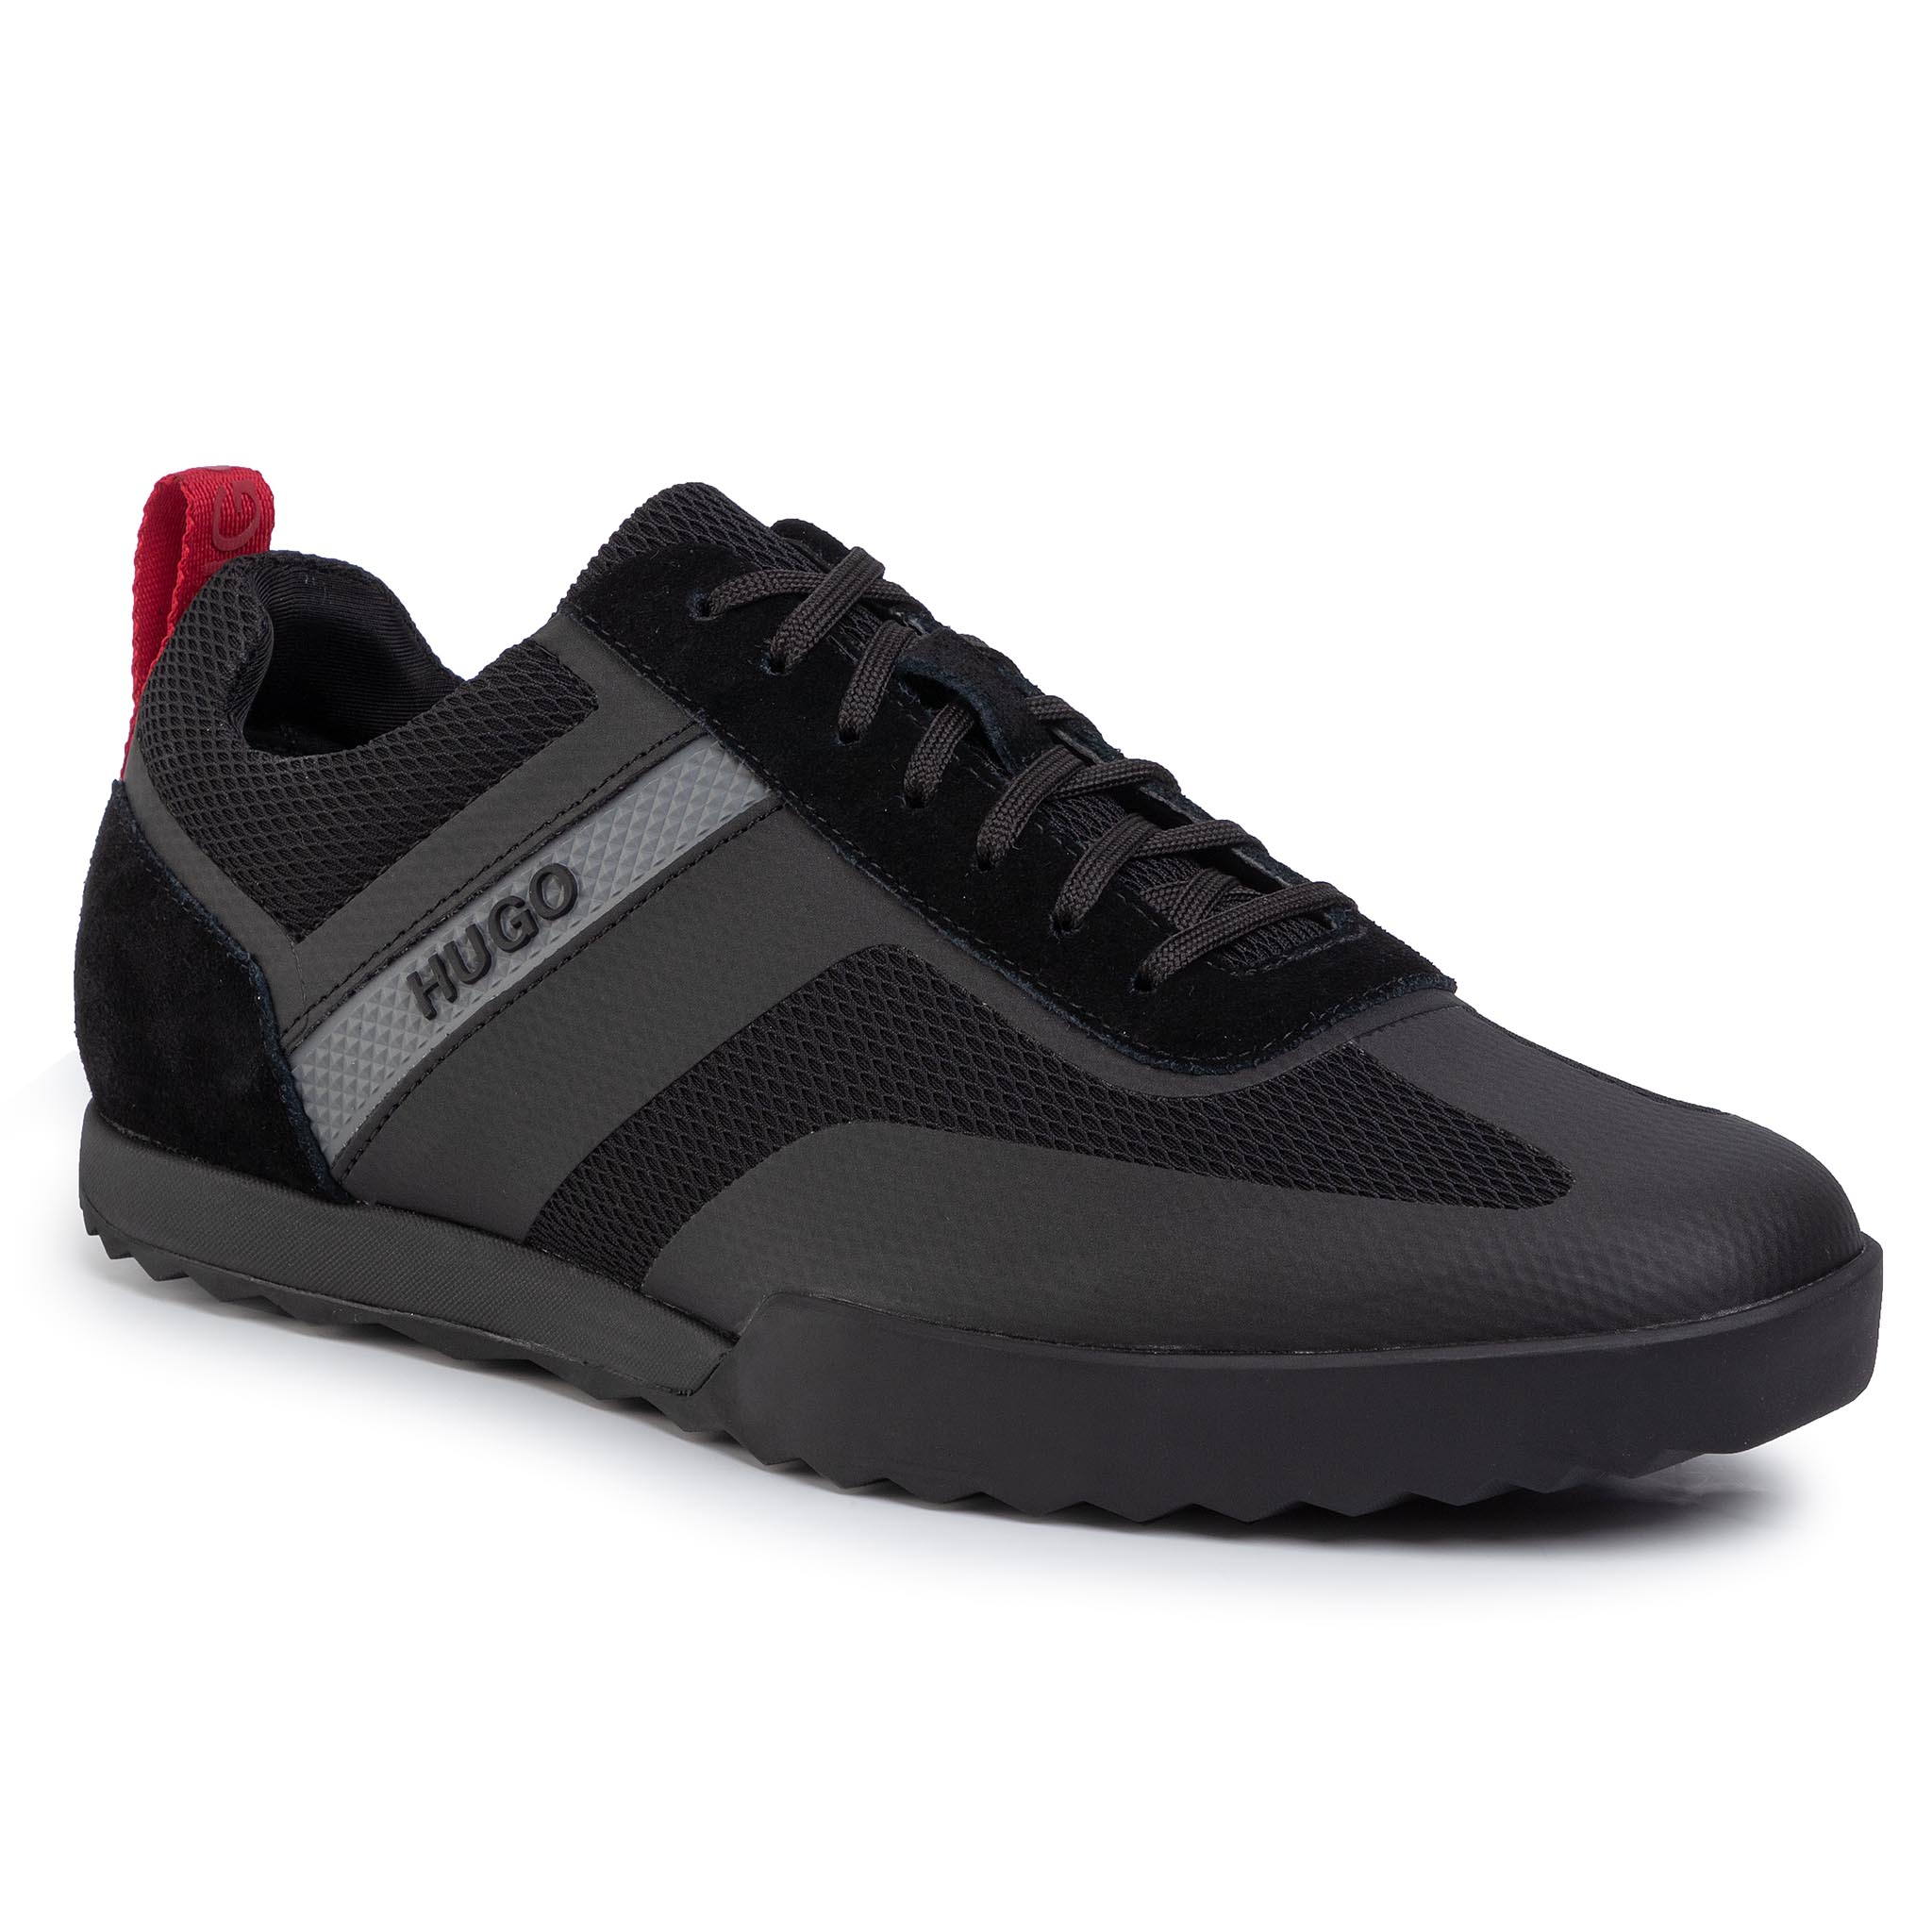 Sneakers HUGO - Matrix 50407638 10216494 01 Black 009